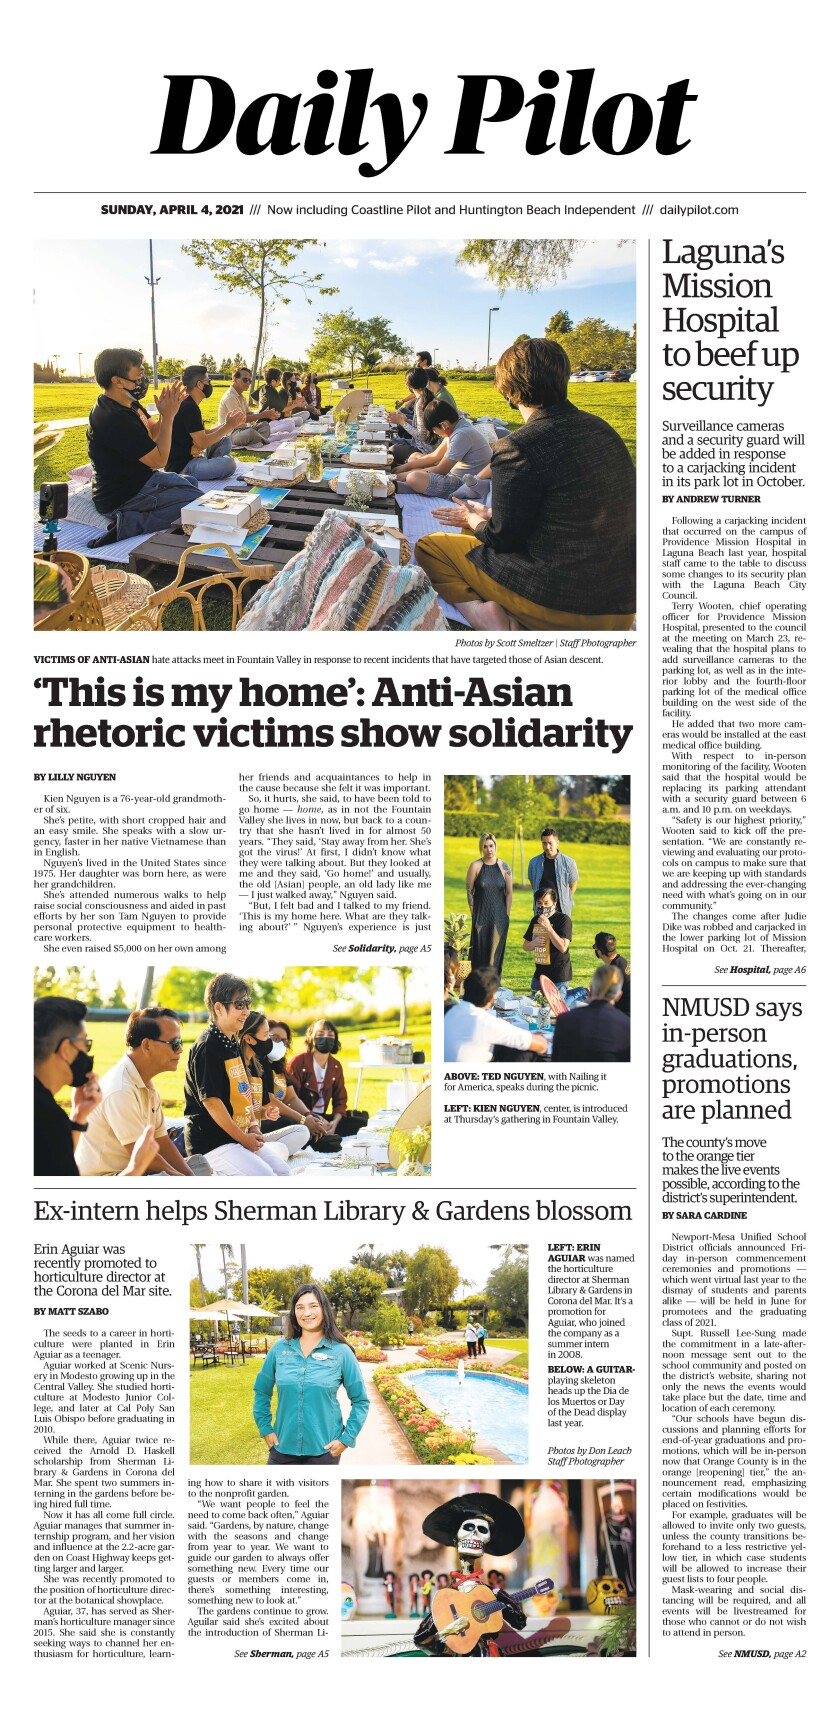 Front page of Daily Pilot e-newspaper for Sunday, April 4, 2021.